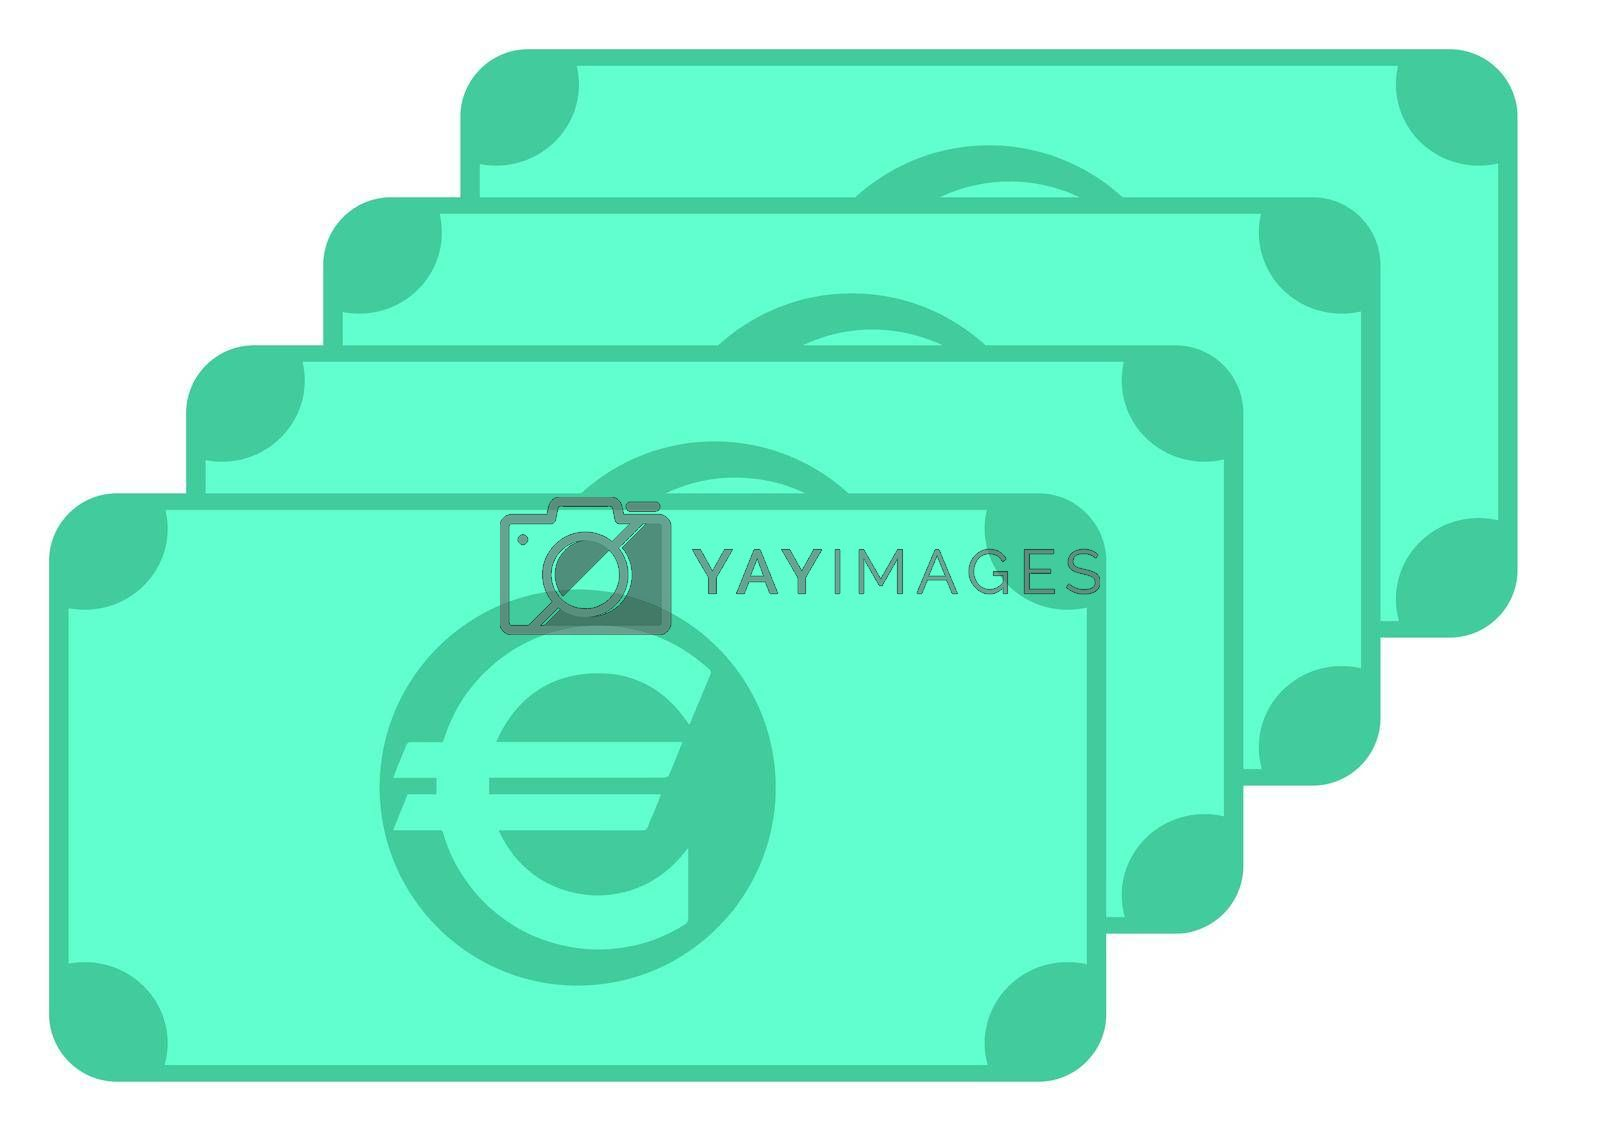 Euro banknote icon, symbol design, colored collection for web and mobile